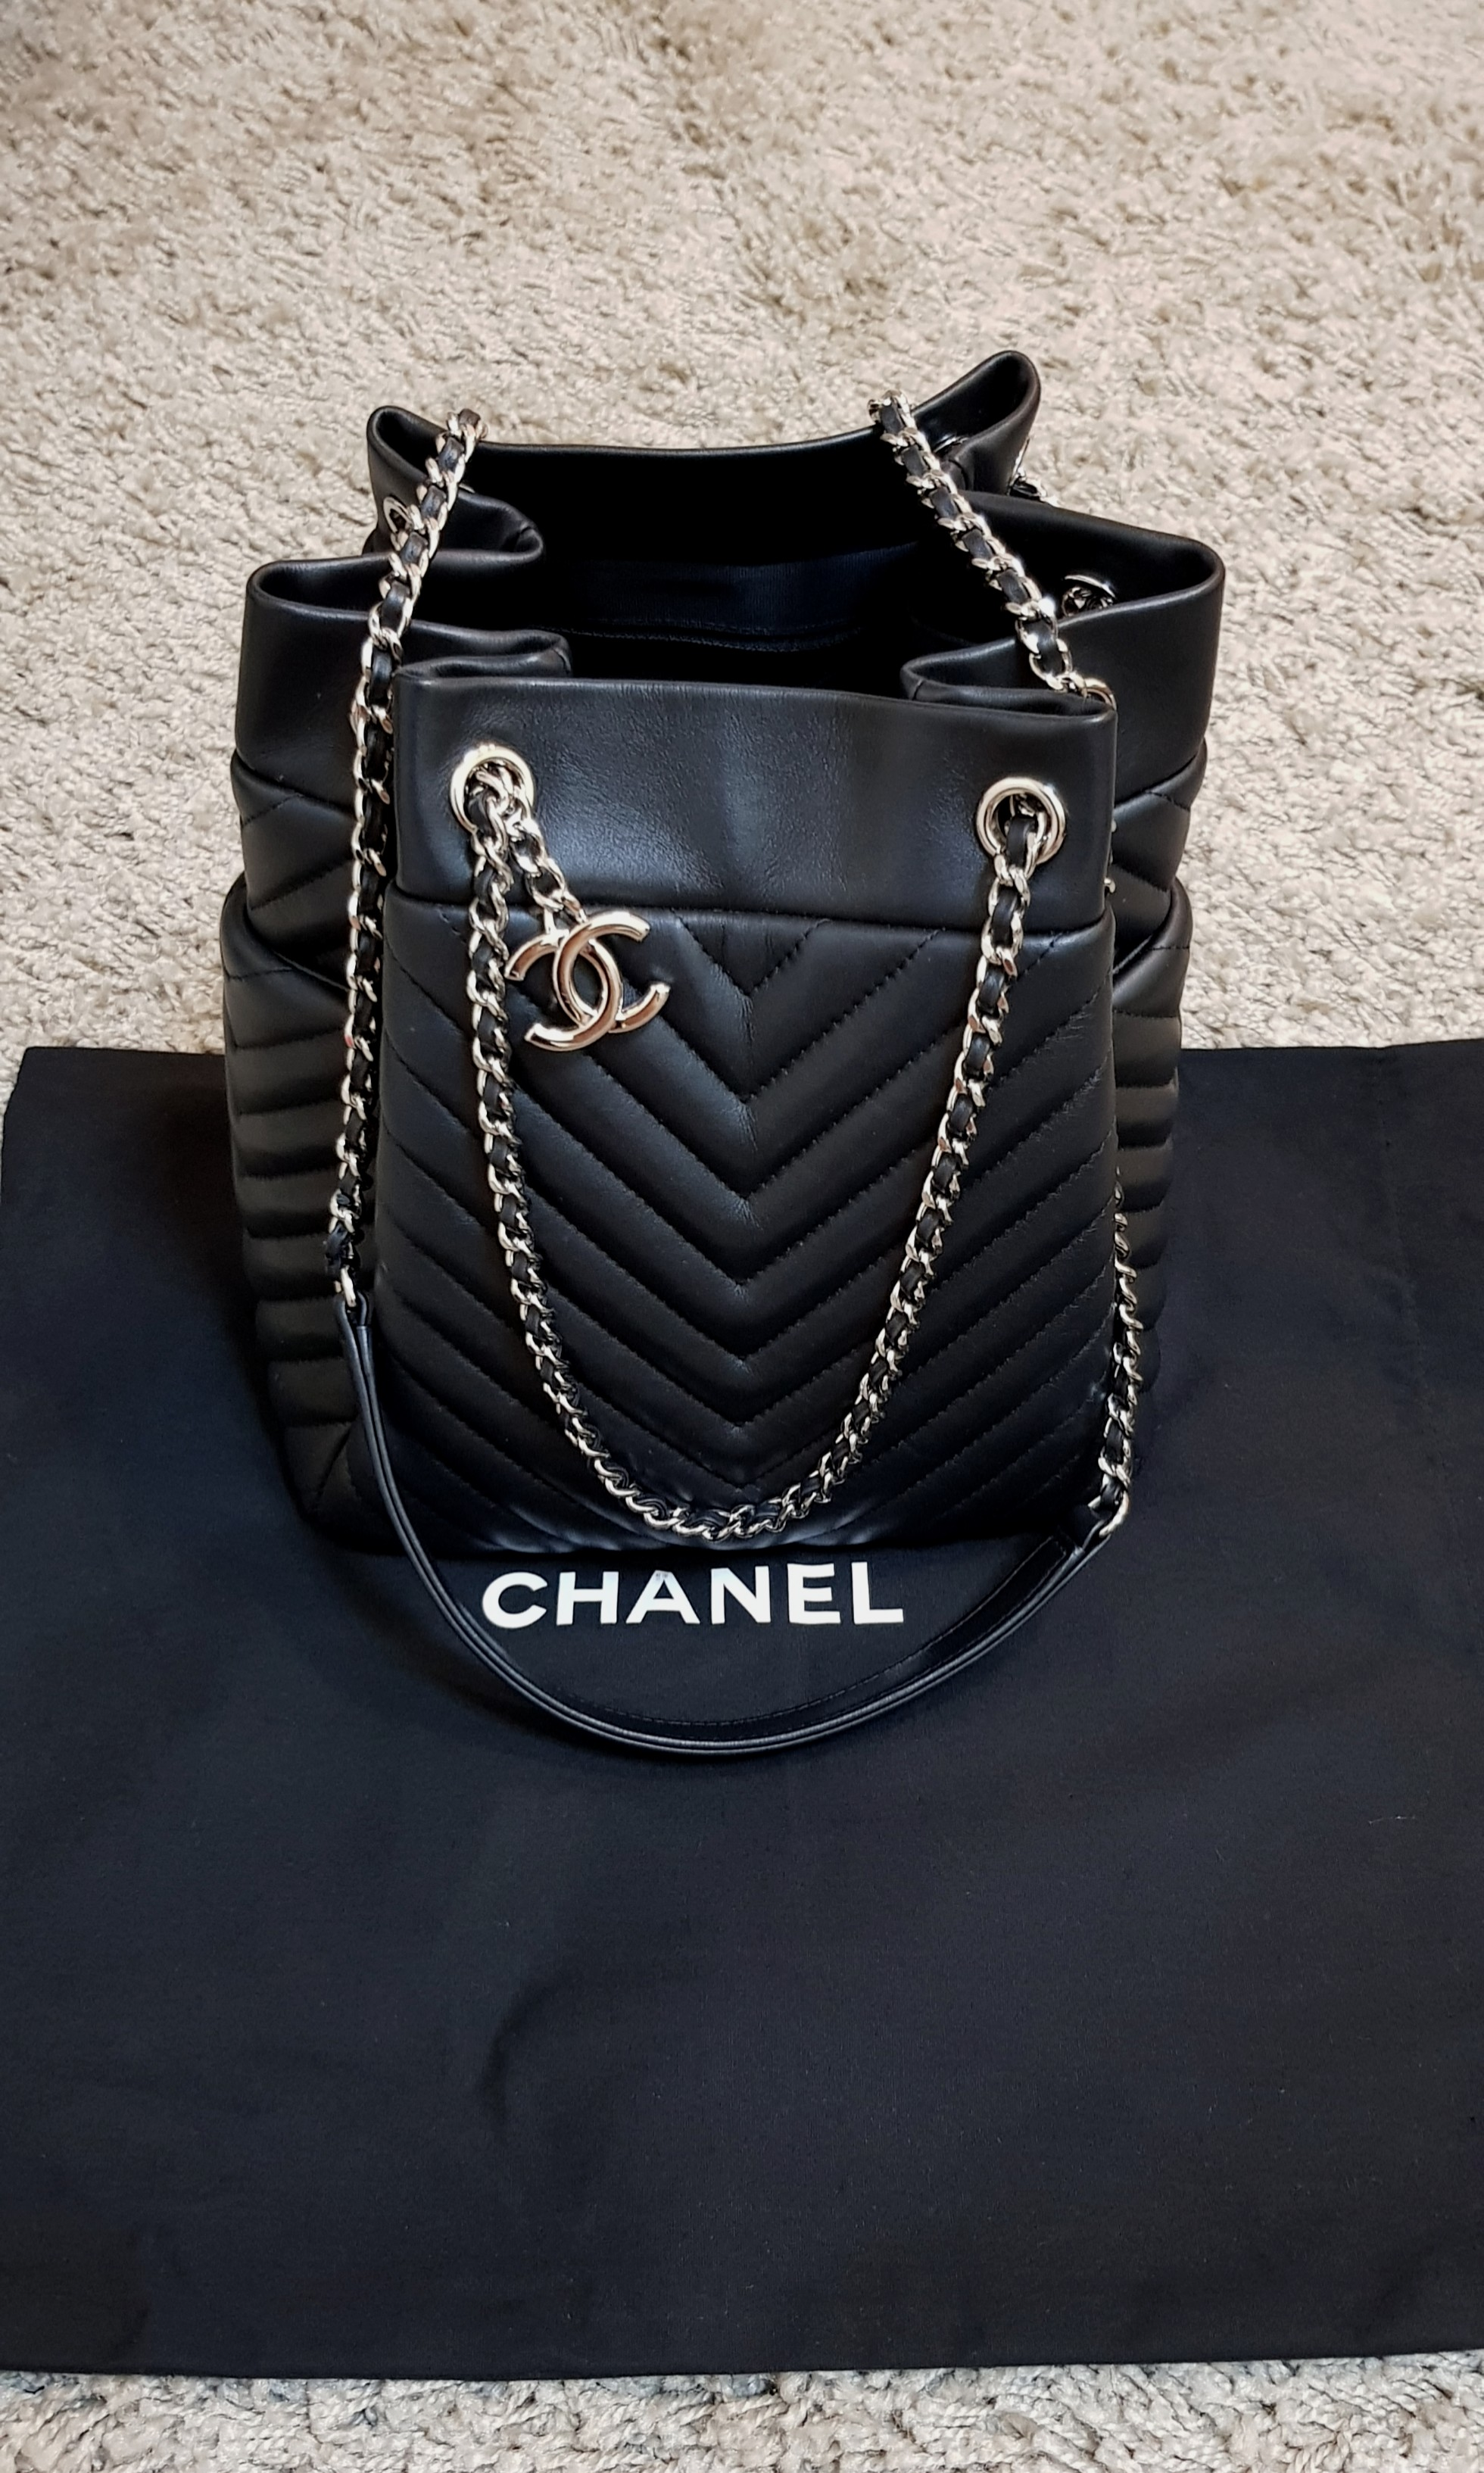 4db727e56bcc Chanel Urban Spirit Drawstring Bag, Luxury, Bags & Wallets, Handbags on  Carousell